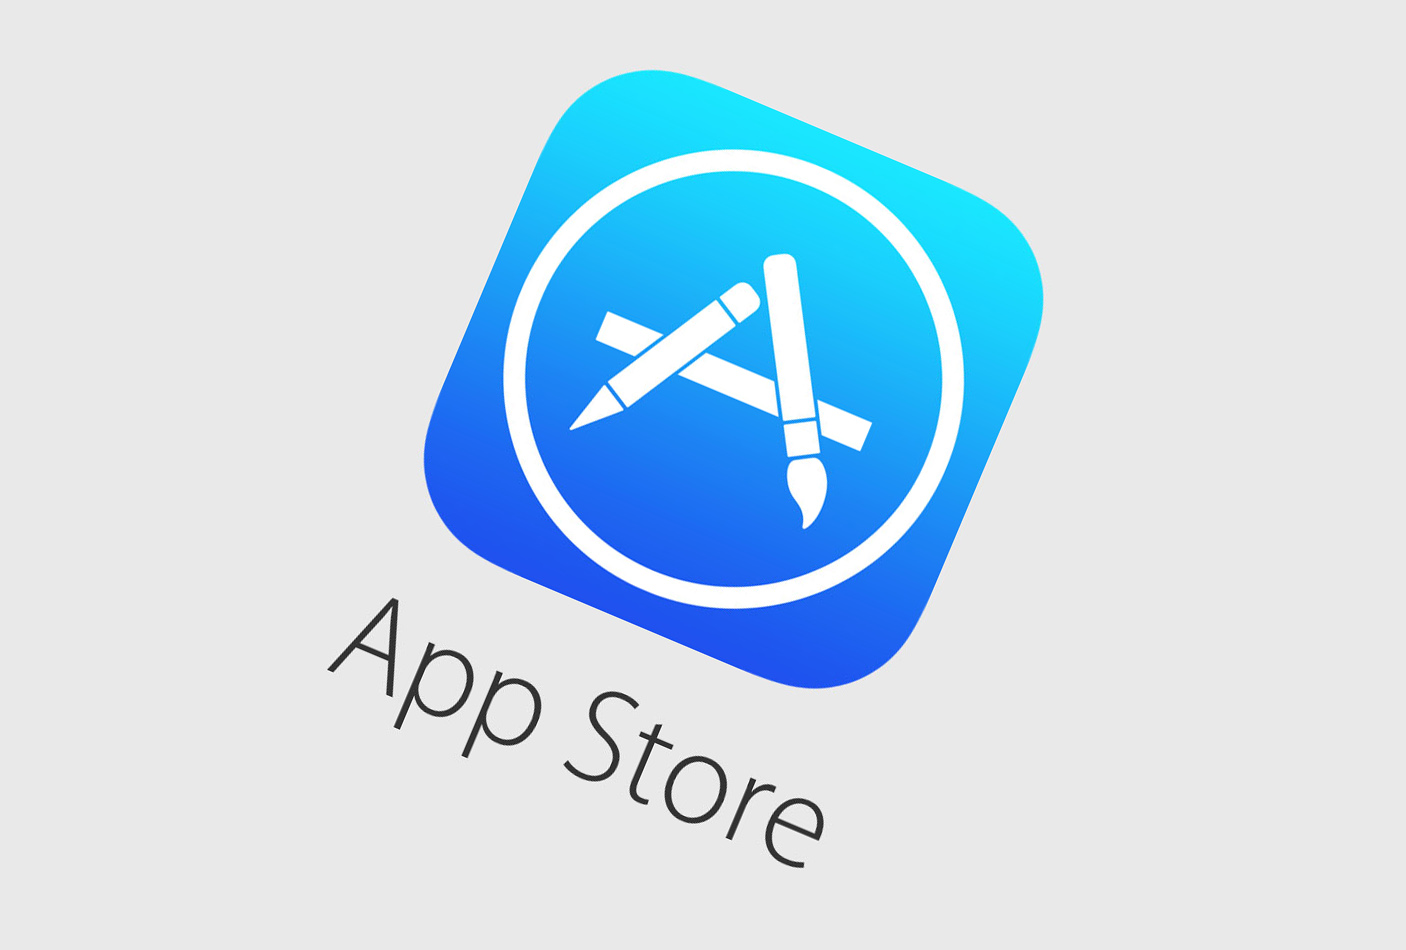 App Store Logotipo para celular iPhone